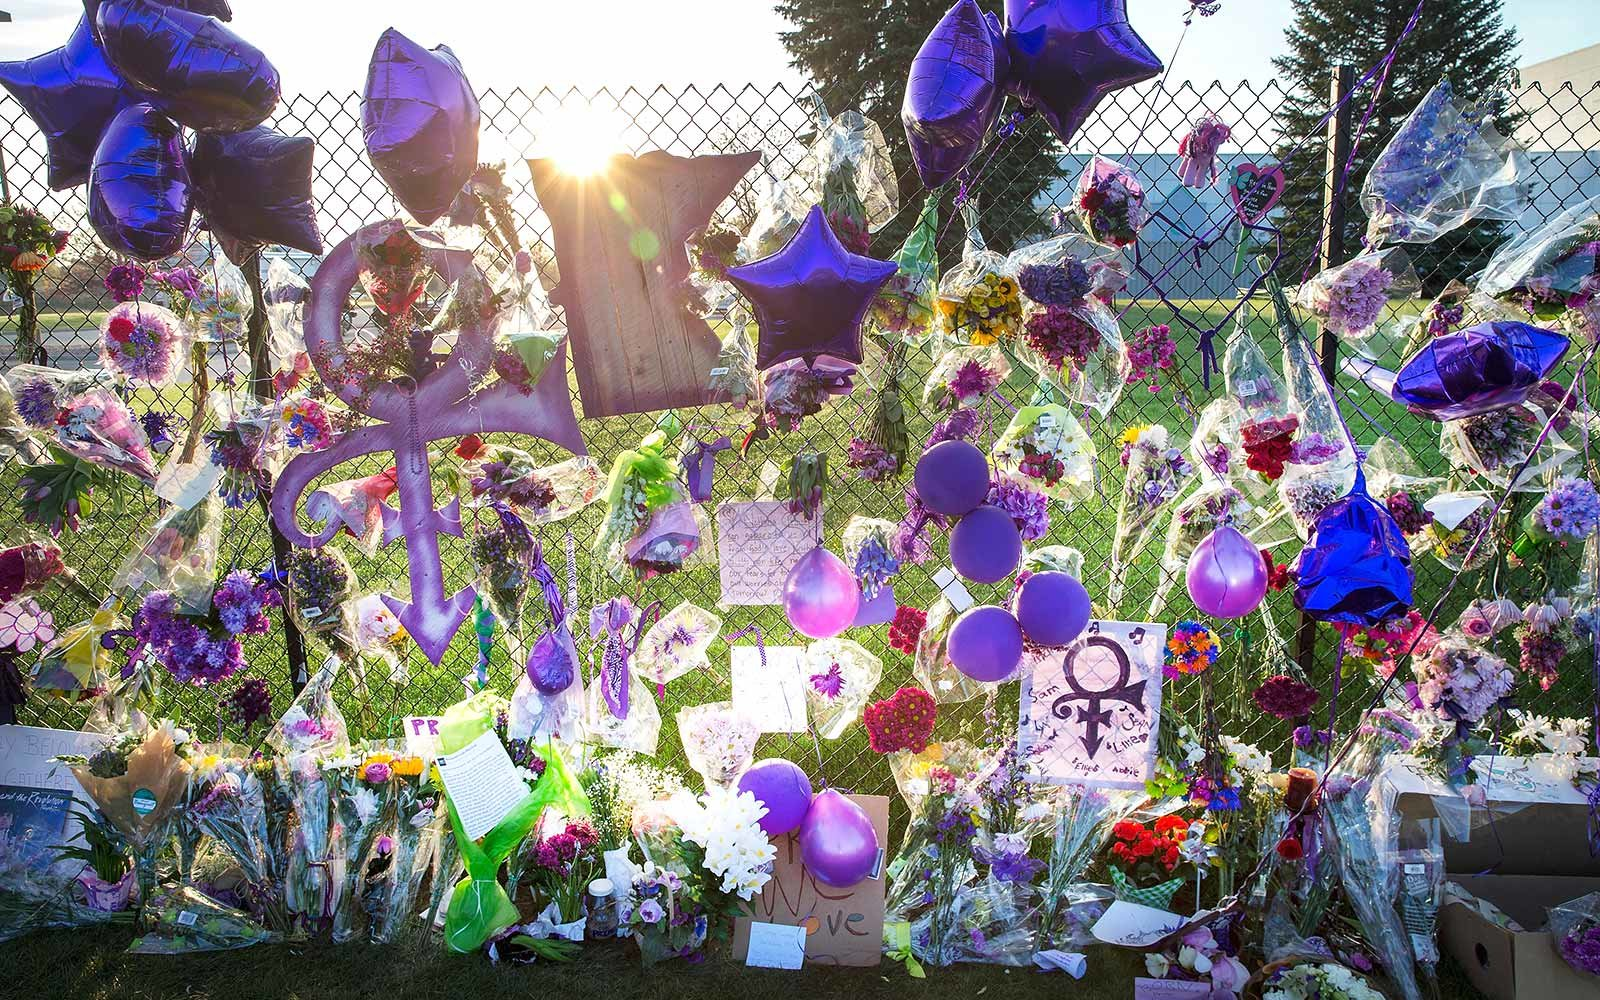 Prince's Paisley Park to Open to the Public on Friday